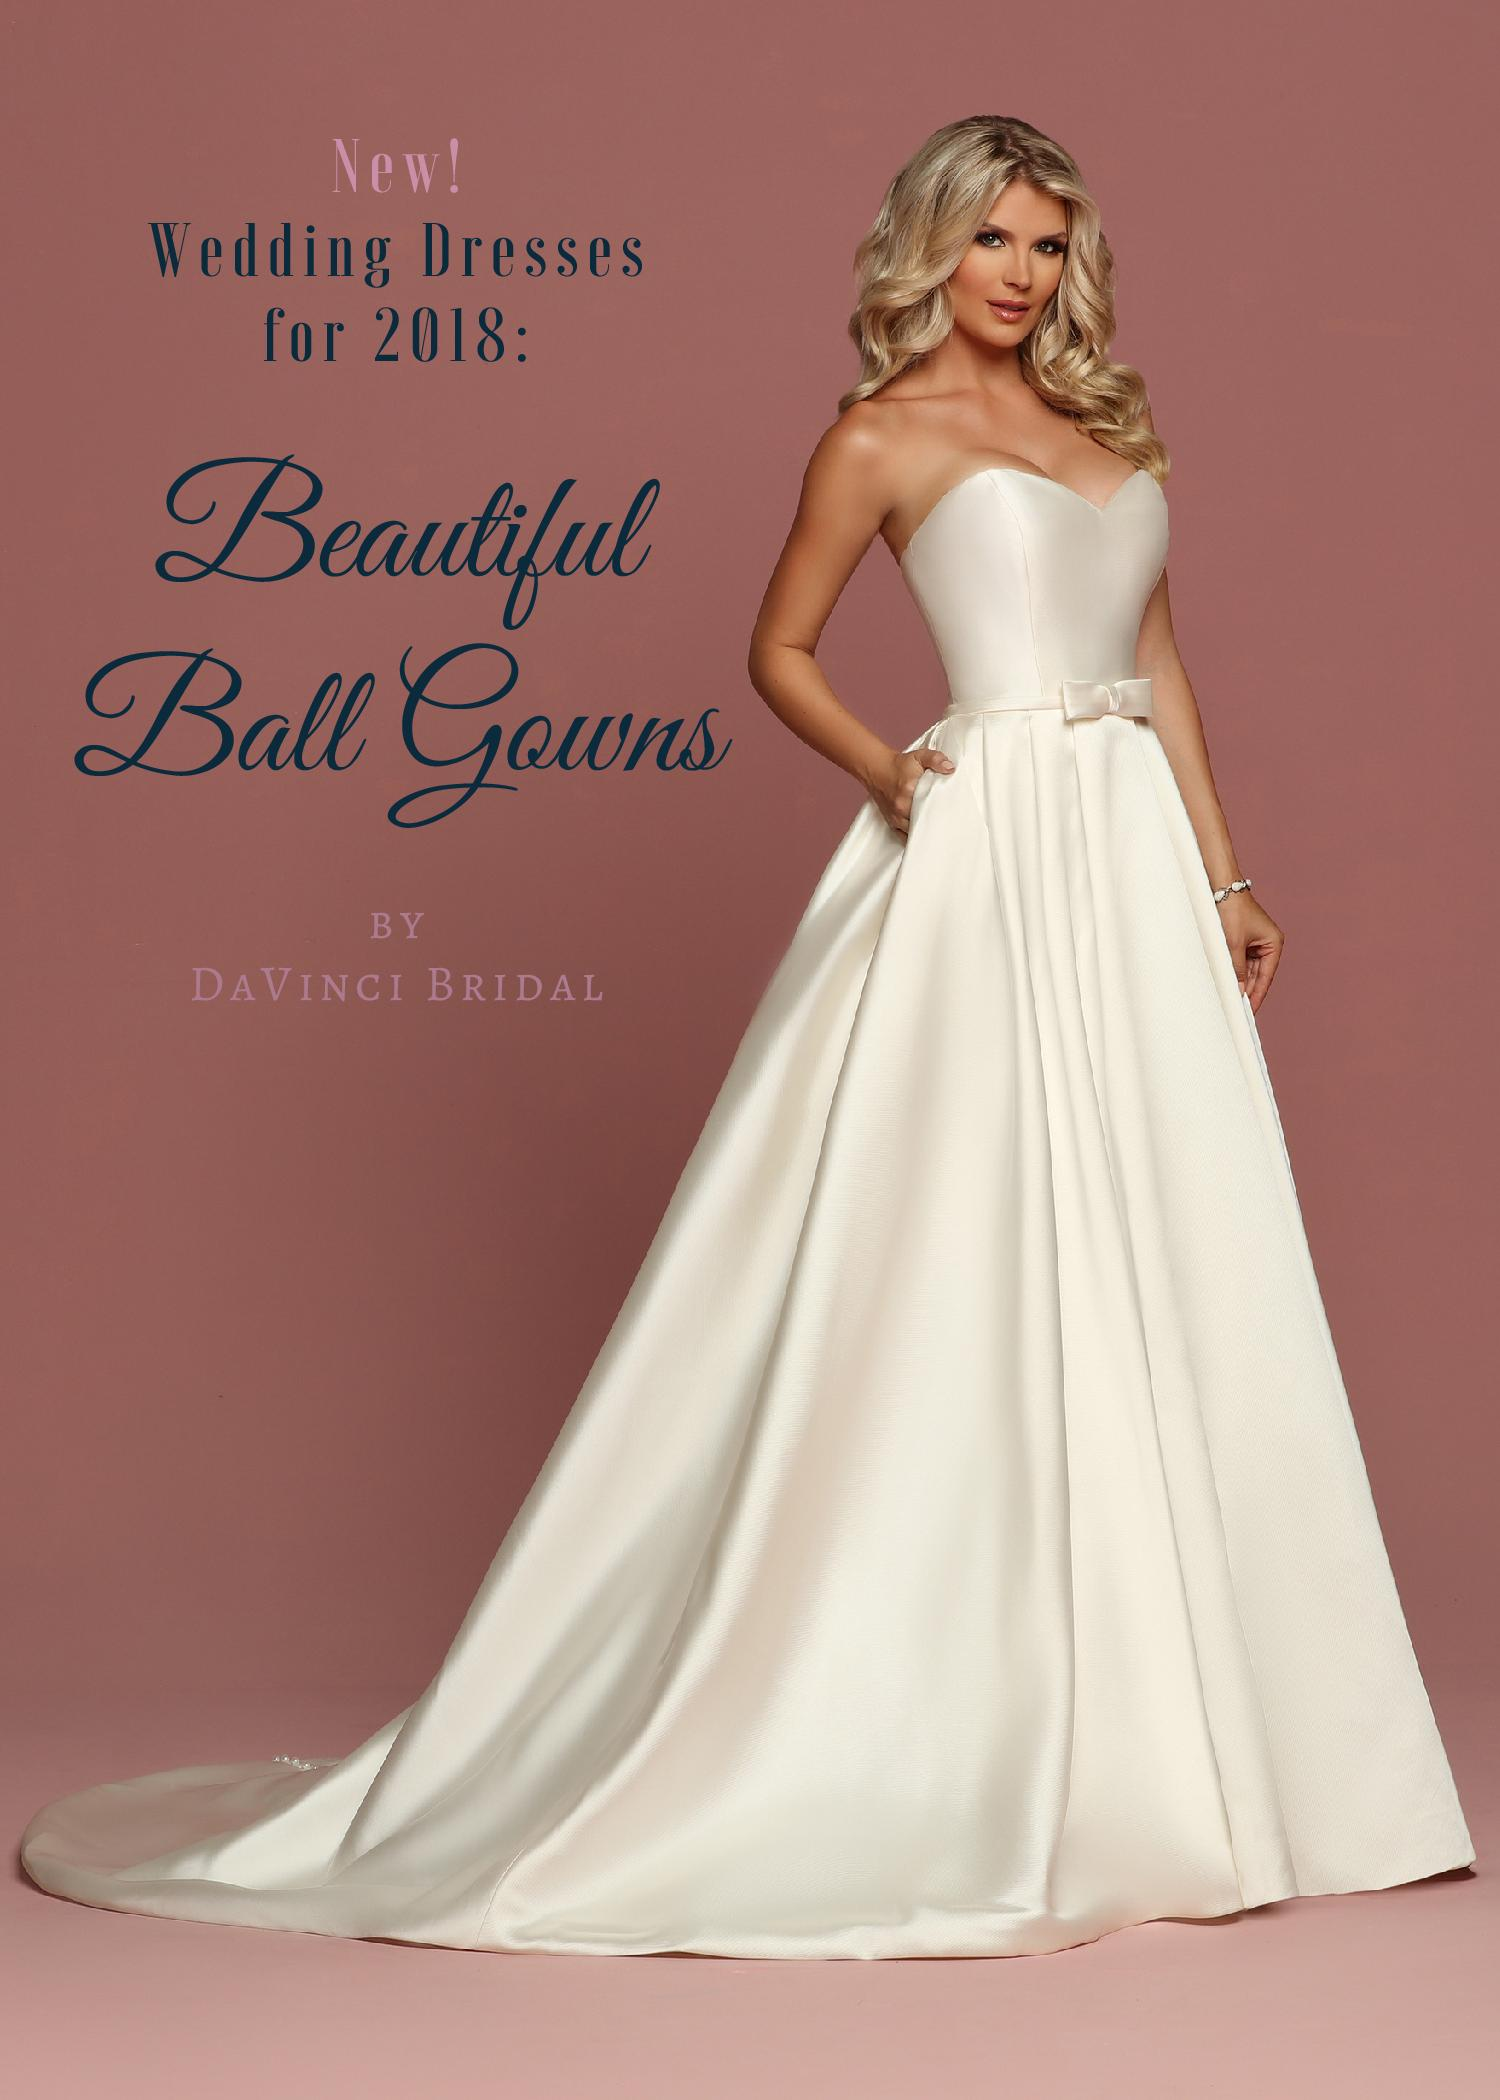 DaVinci Bridal Dress Collection for 2018: Beautiful Ball Gowns